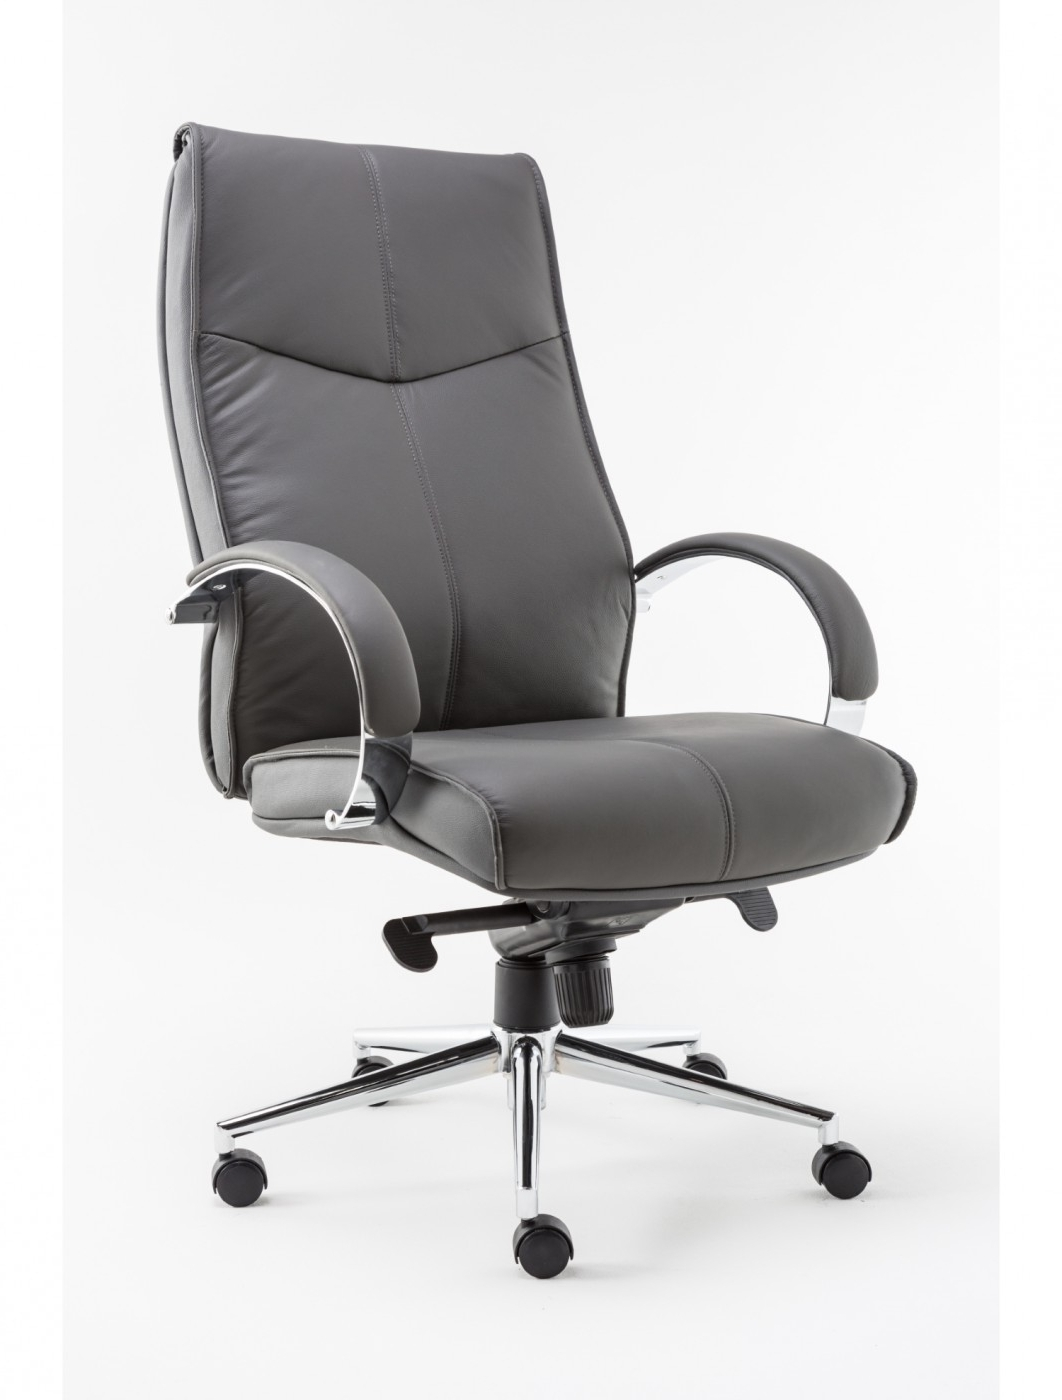 Black Executive Office Chairs Inside Well Liked Alphason Verona Executive Office Chair Aoc1019Gry (View 2 of 20)